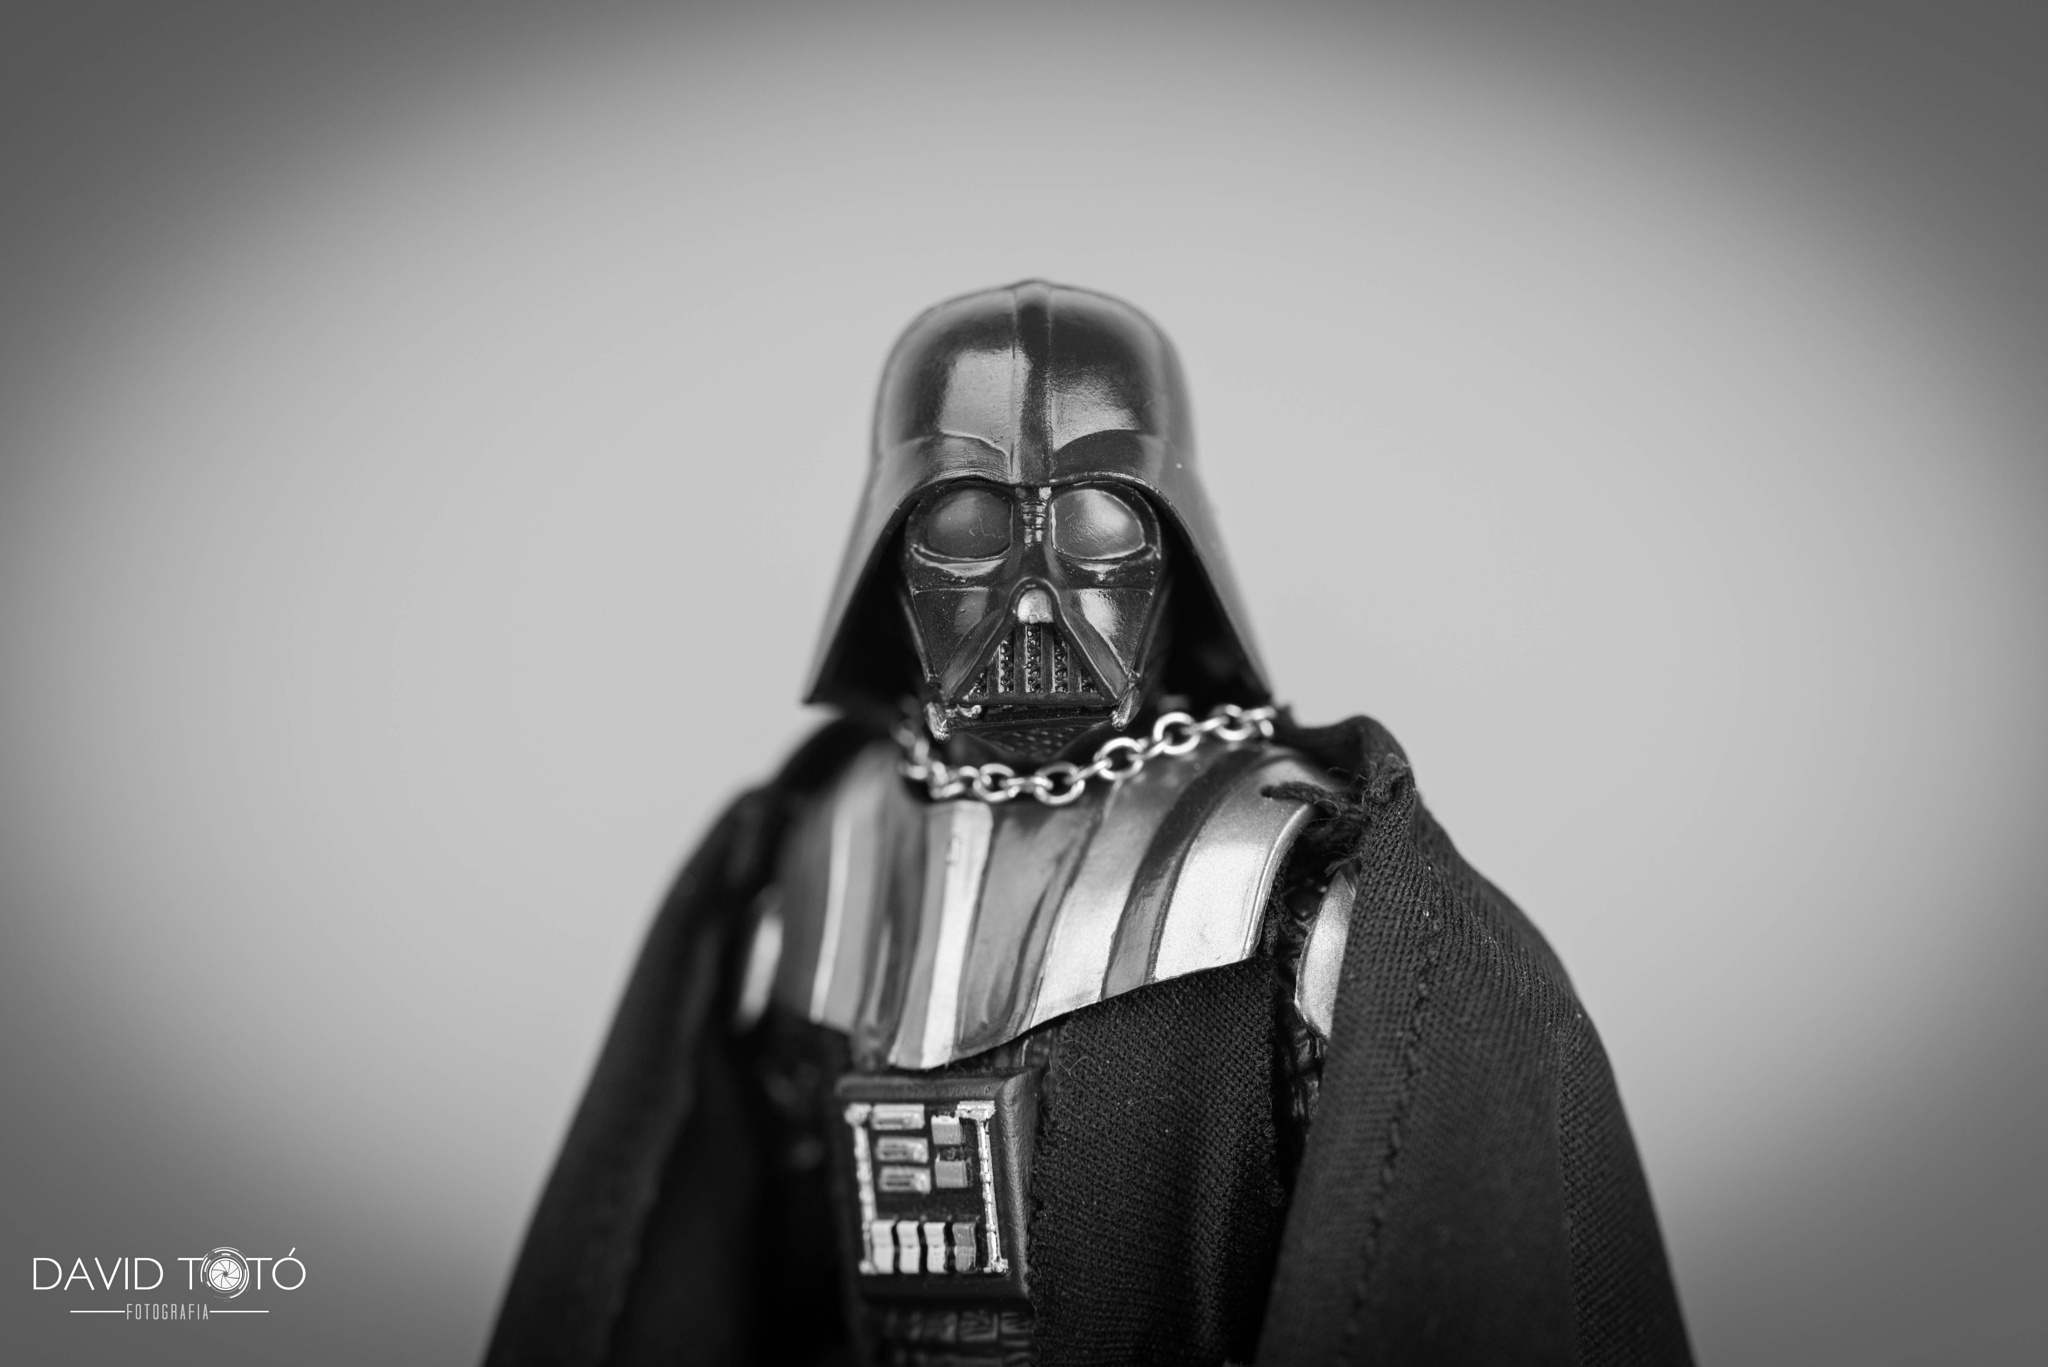 The Dark Side by totttovsky